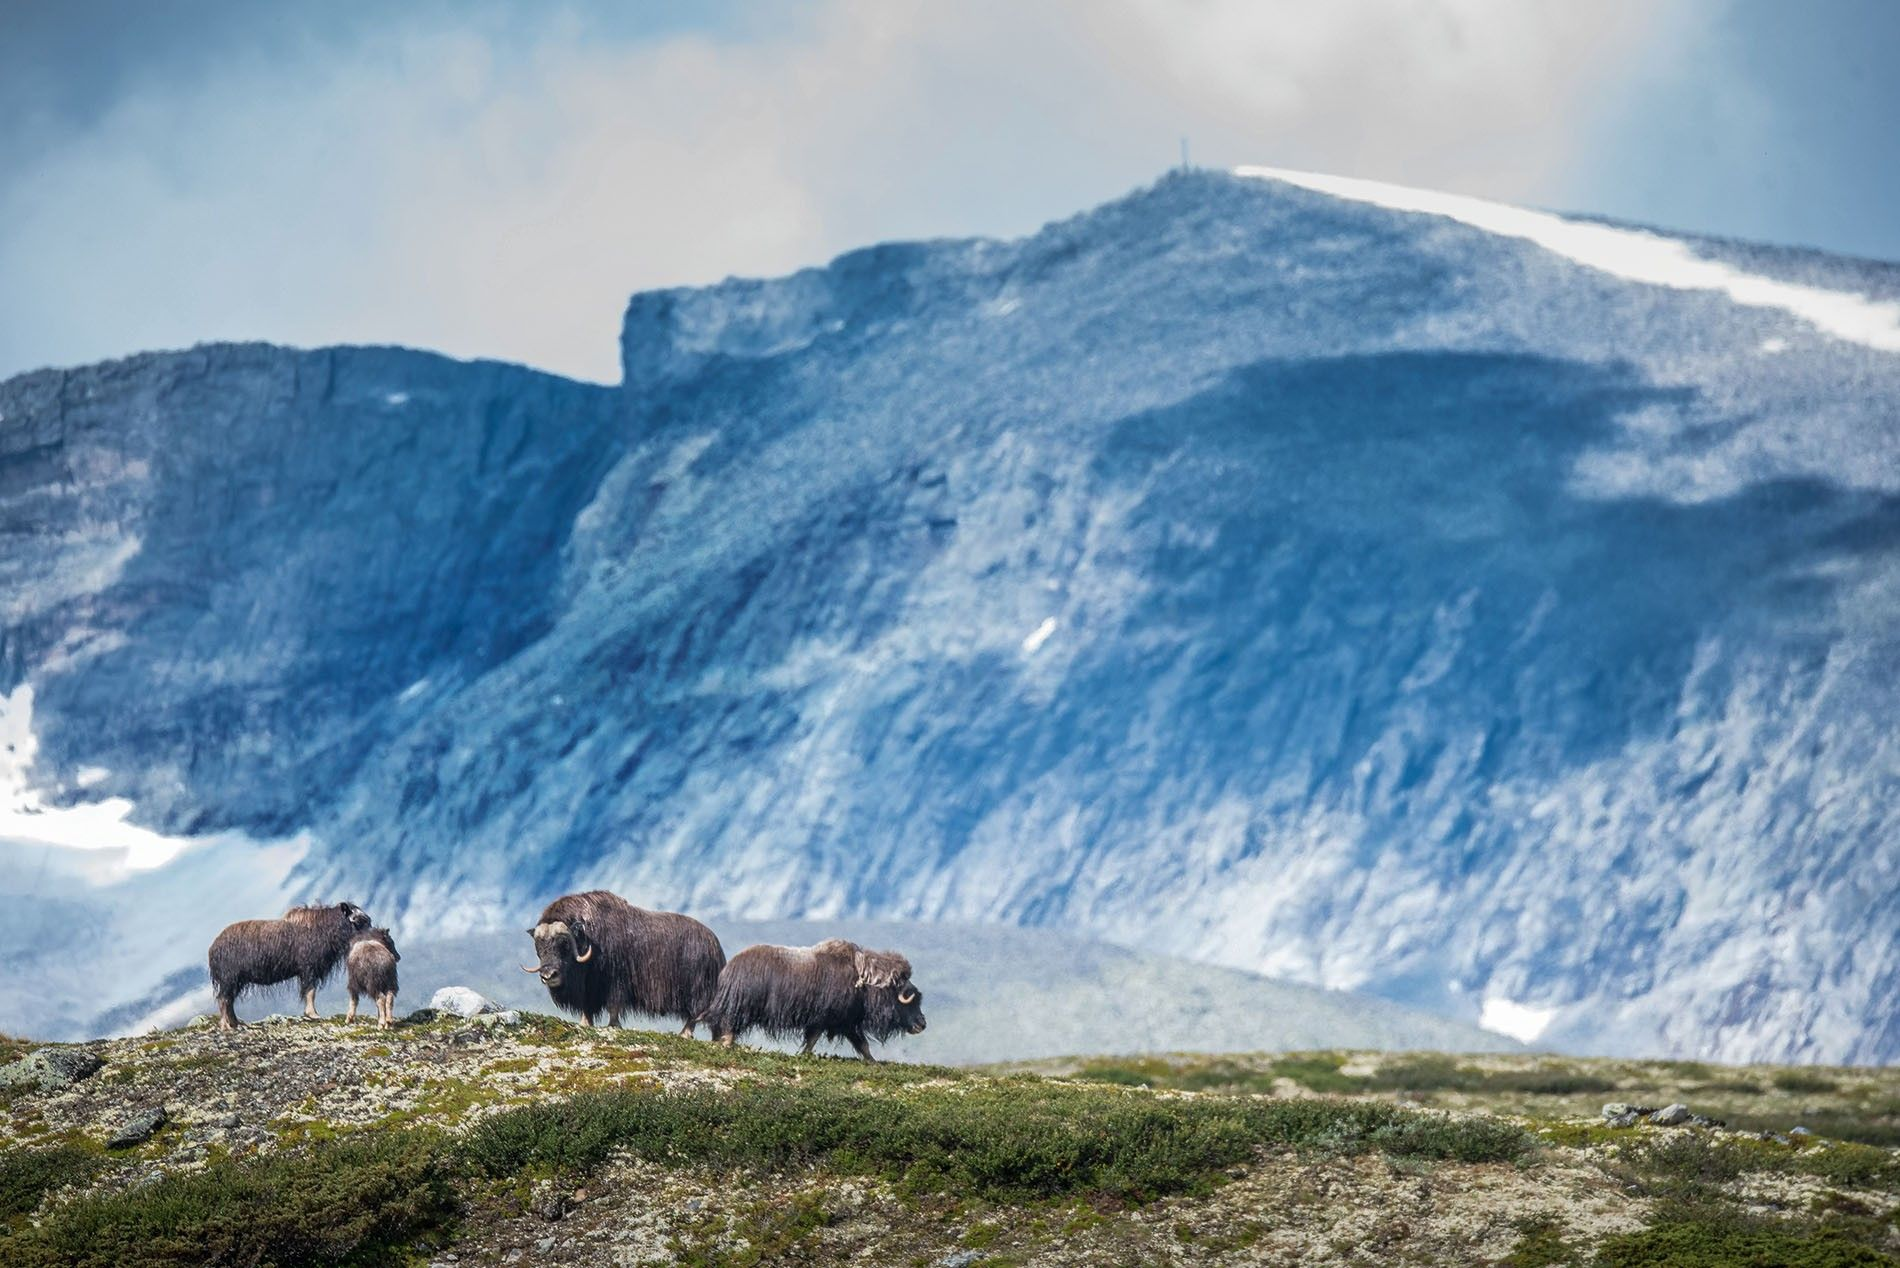 Musk oxen roam the open spaces of Dovrefjell National Park in central Norway's Trondelag region.